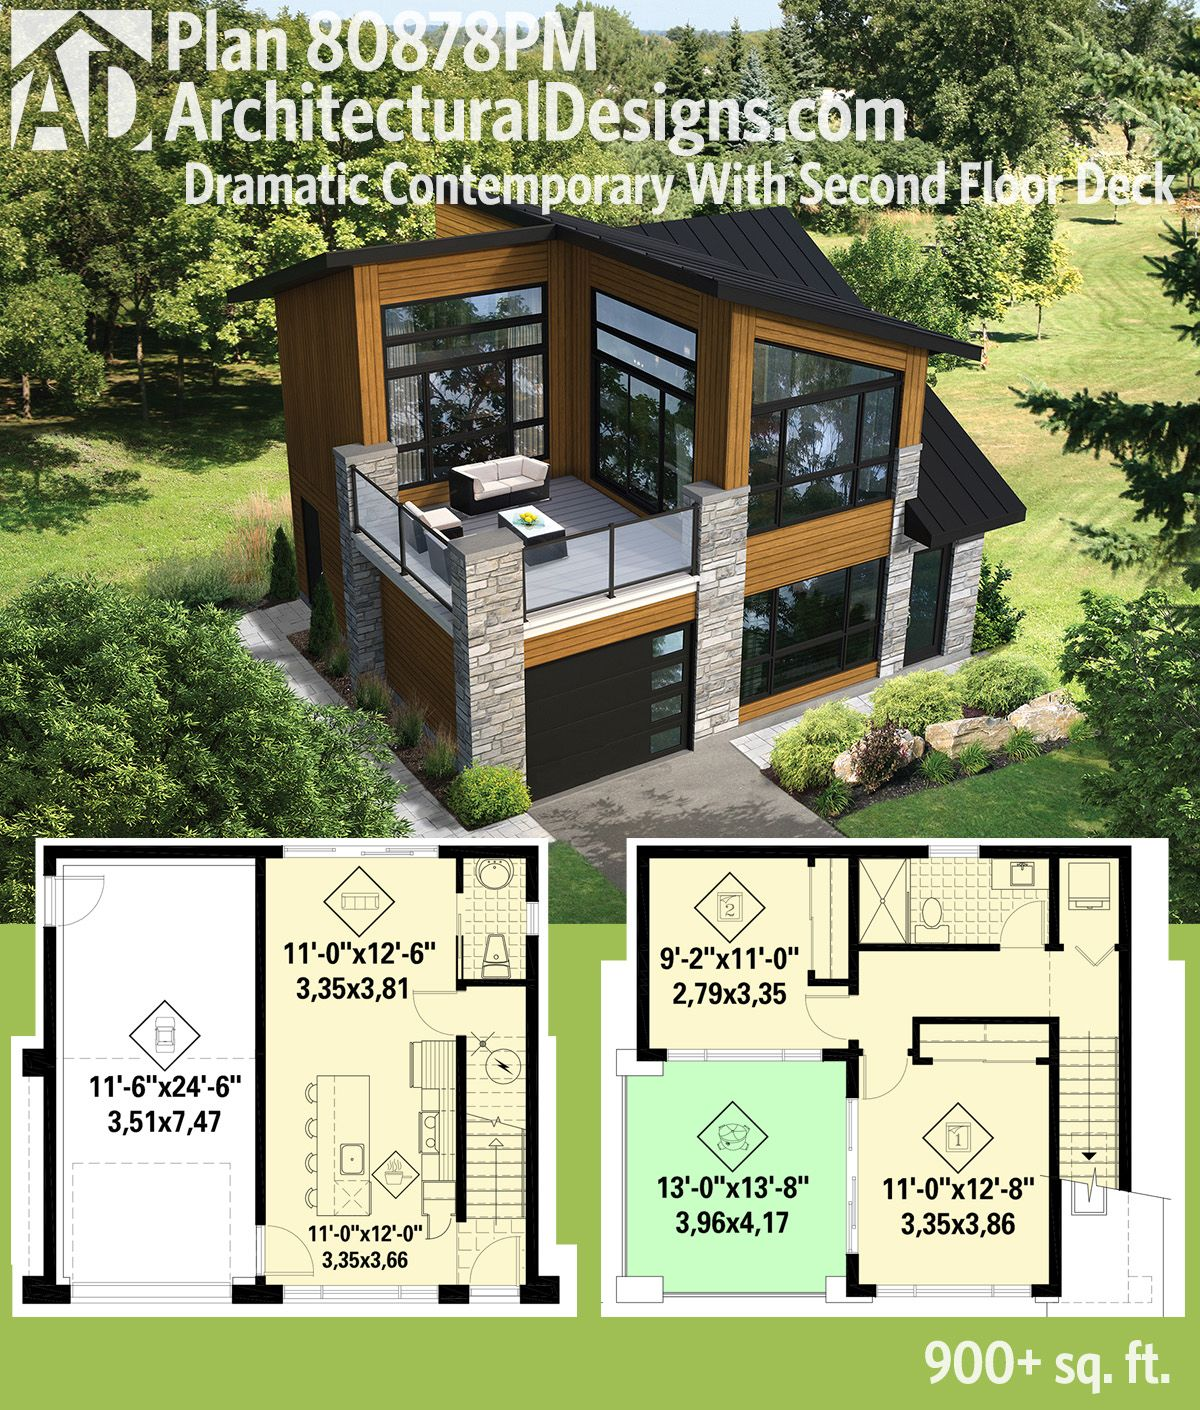 Plan 80878pm dramatic contemporary with second floor deck Small green home plans